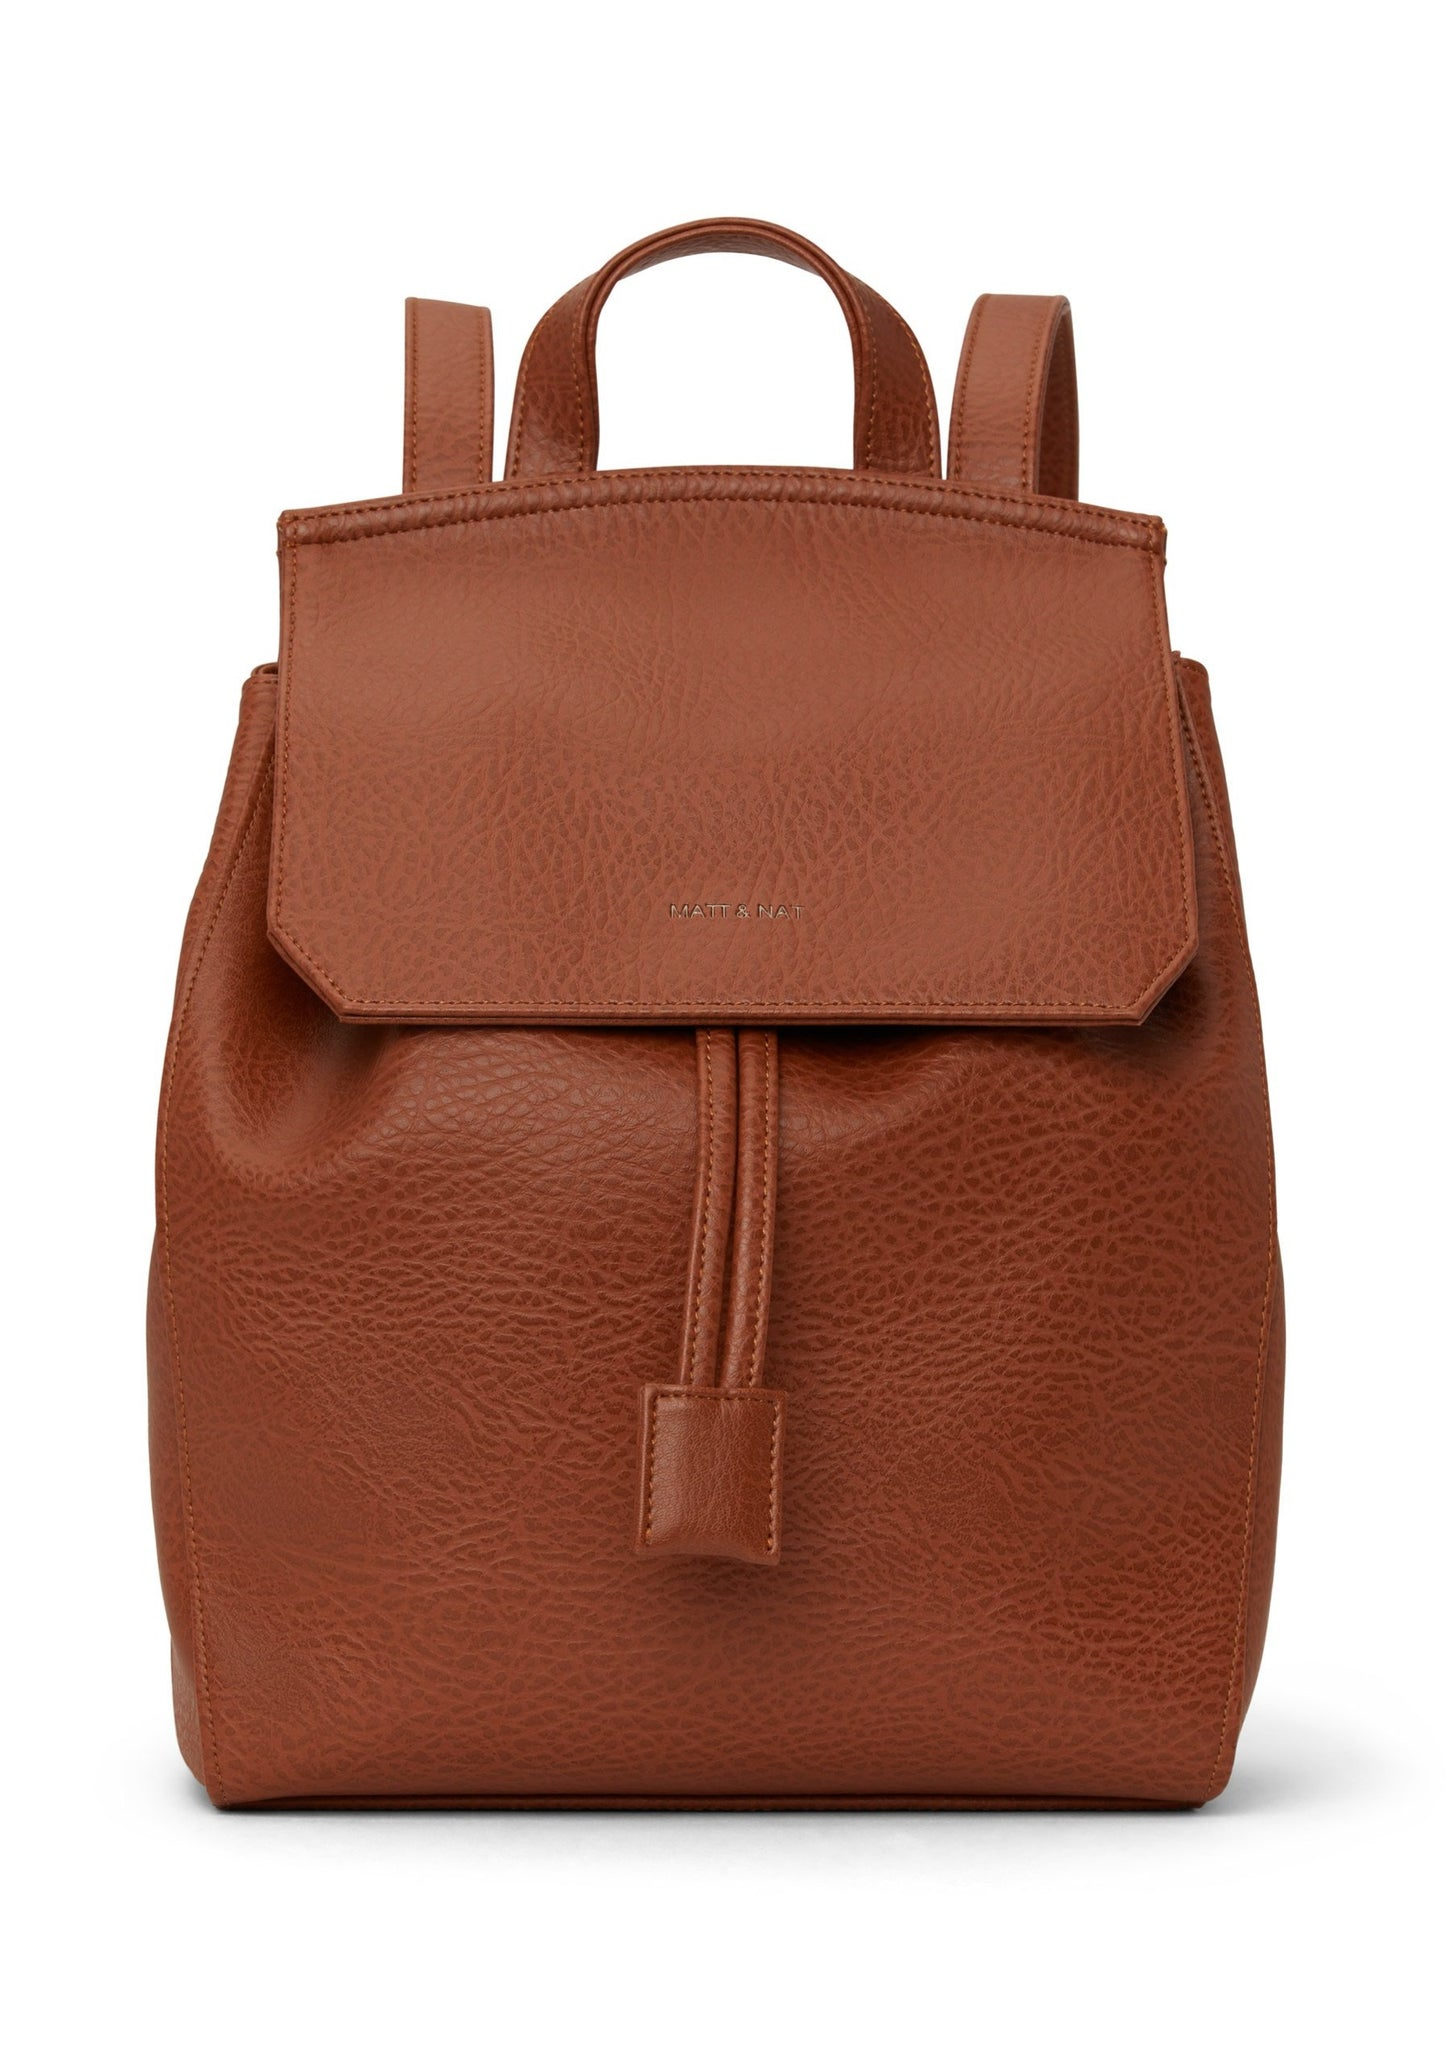 Matt & Nat - Mumbai Dwell Backpack - Chai (Tan) Vegan Leather